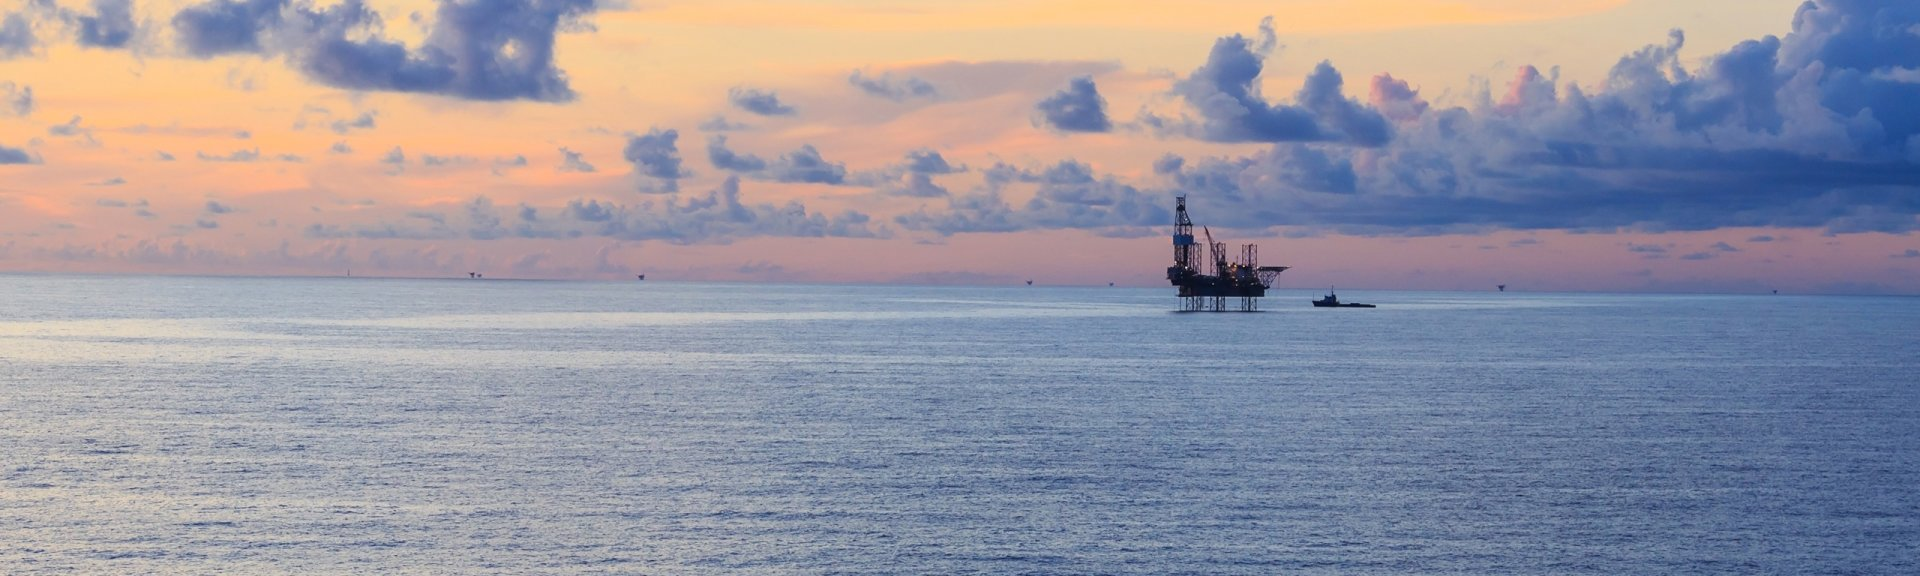 A ship and oil rig. Image: Shutterstock.